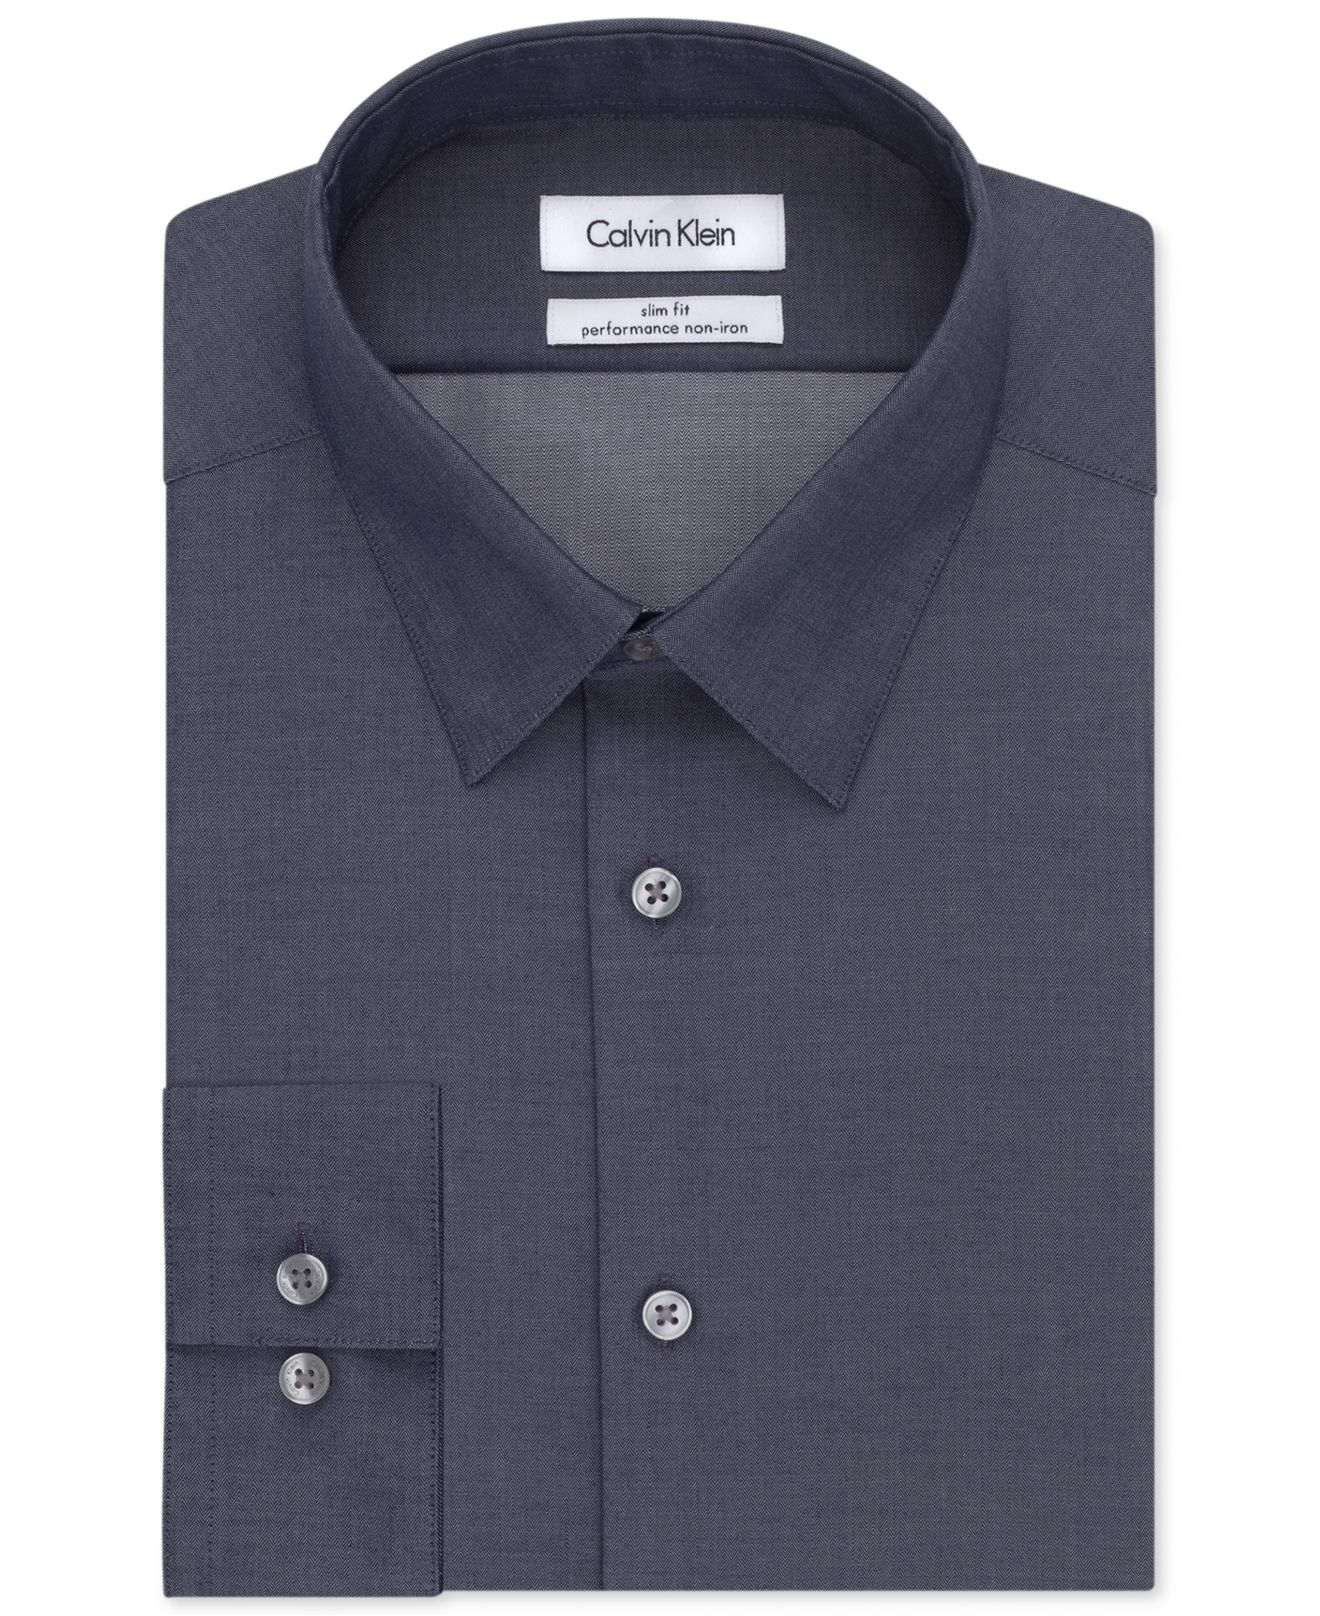 Calvin klein steel men 39 s slim fit non iron performance for Slim fit non iron dress shirts